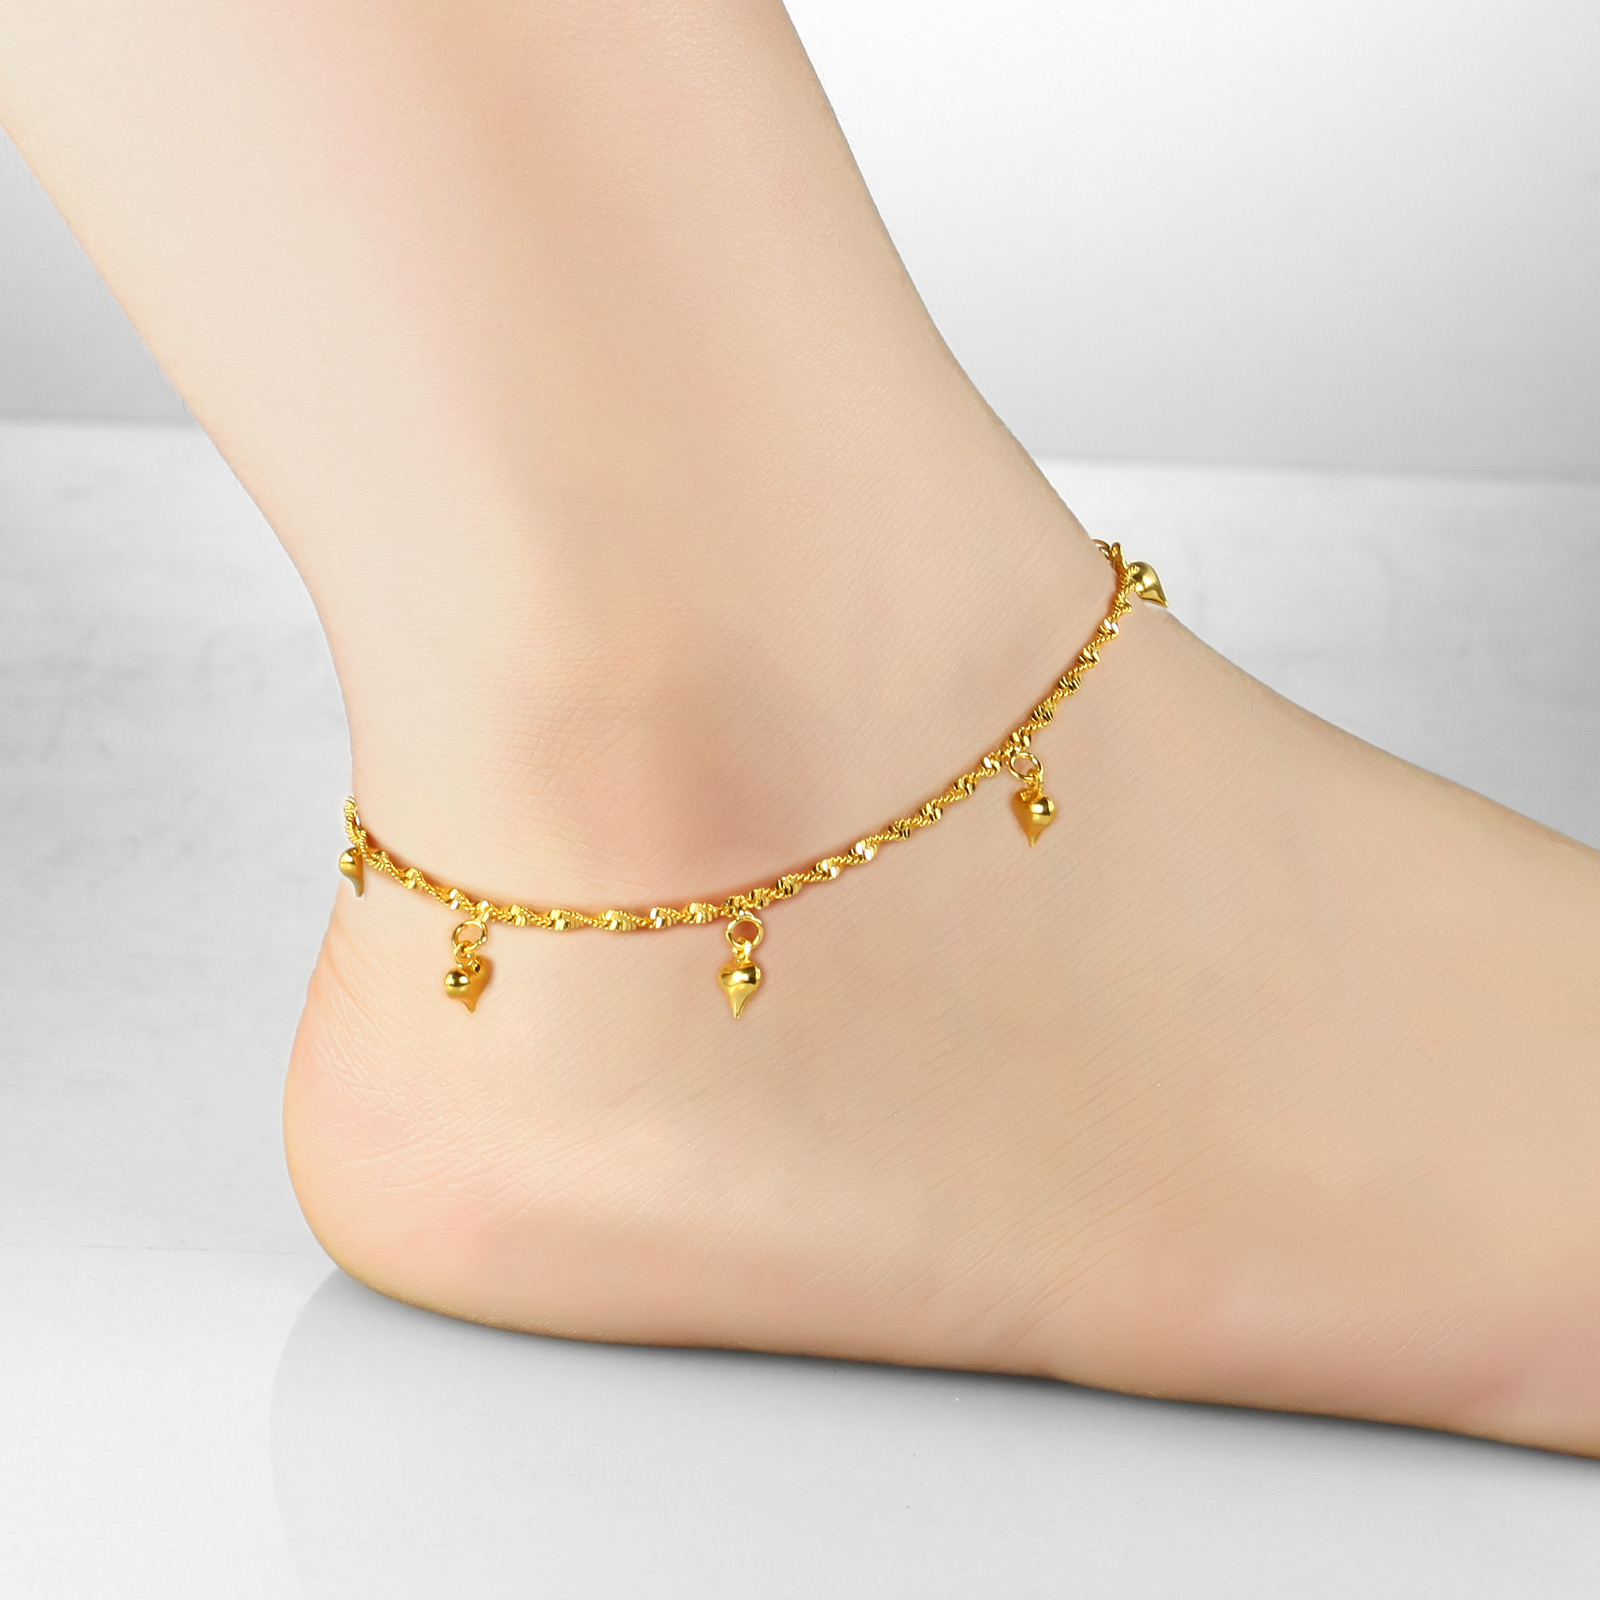 online diamonds for anklet occasion buy women gifts designer mhaaaaabkhrk wedding malabar gold